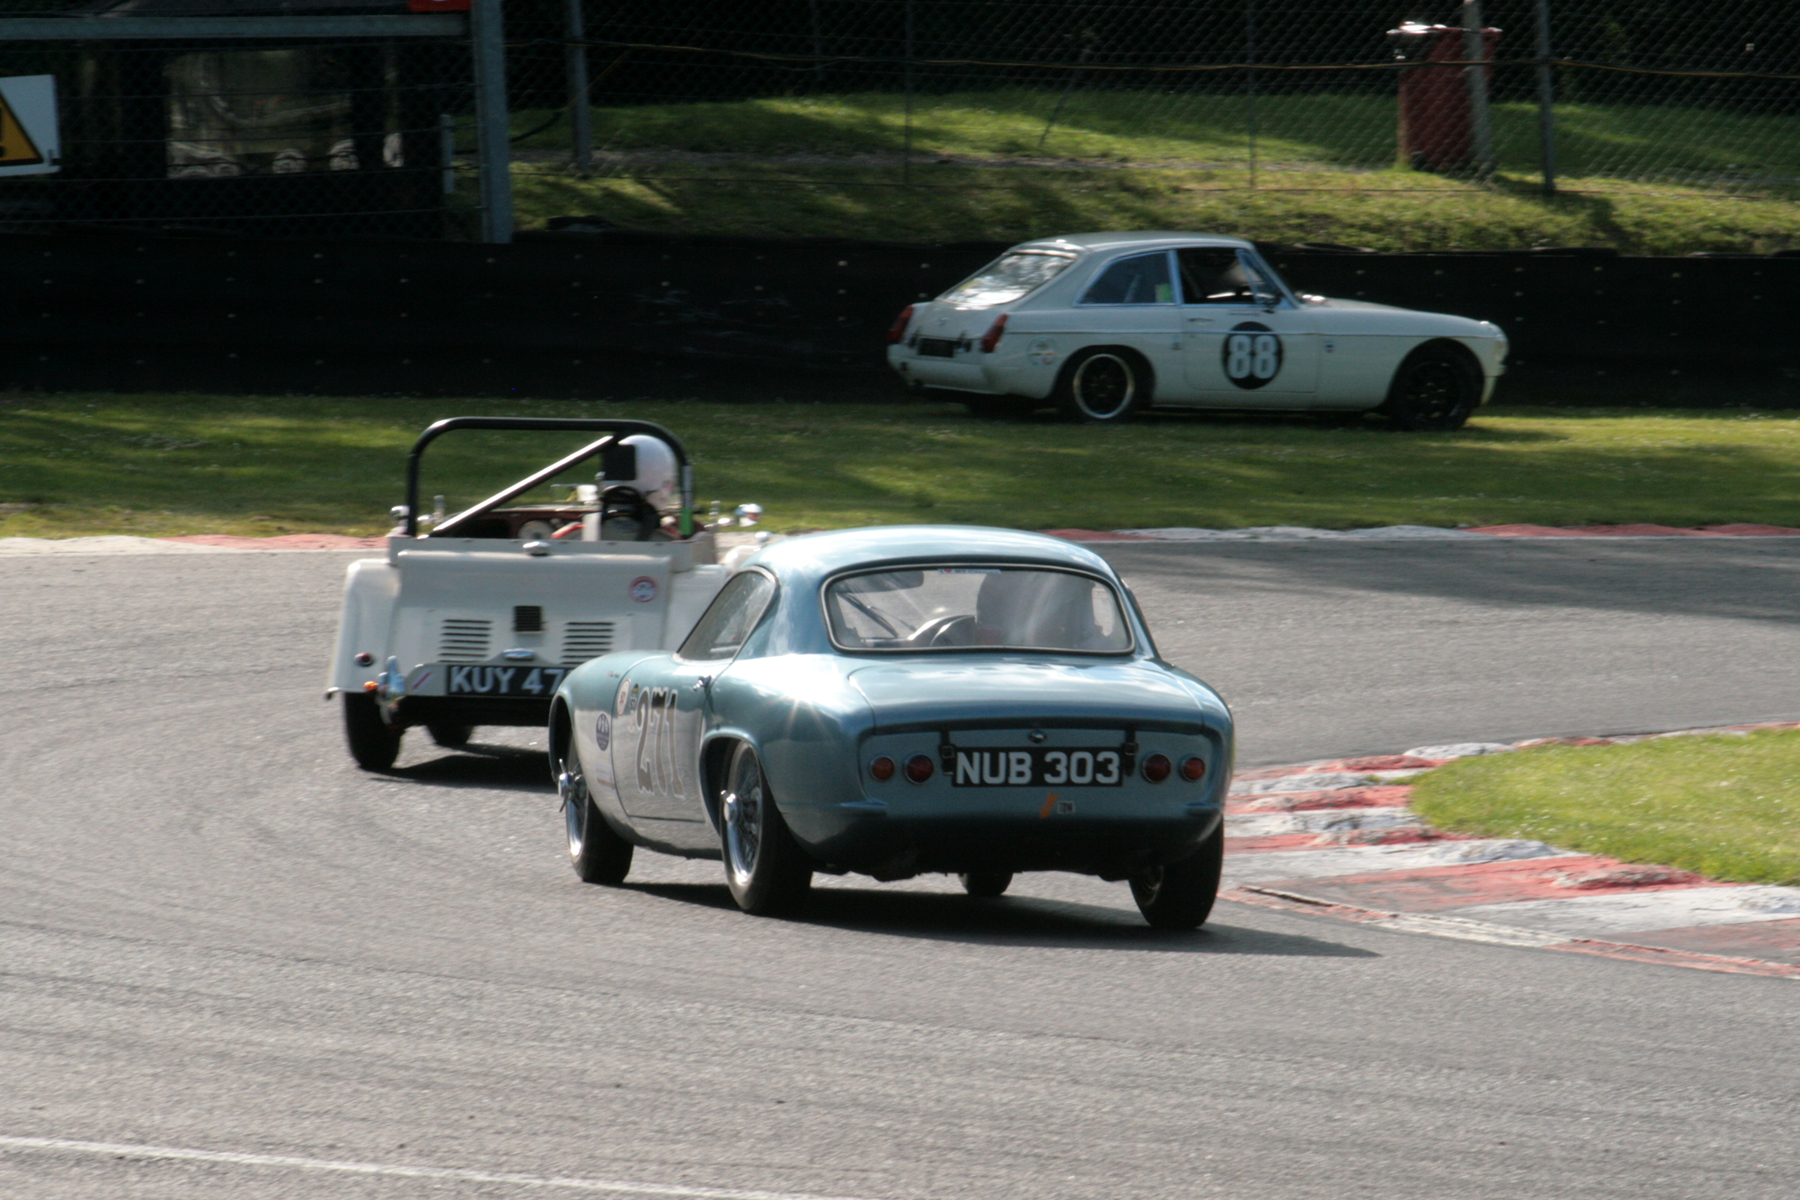 Druids, and Brian Arculus is about to lap Mark Shears. Note Harry Brown's MGB GT parked up having retired on lap 6.